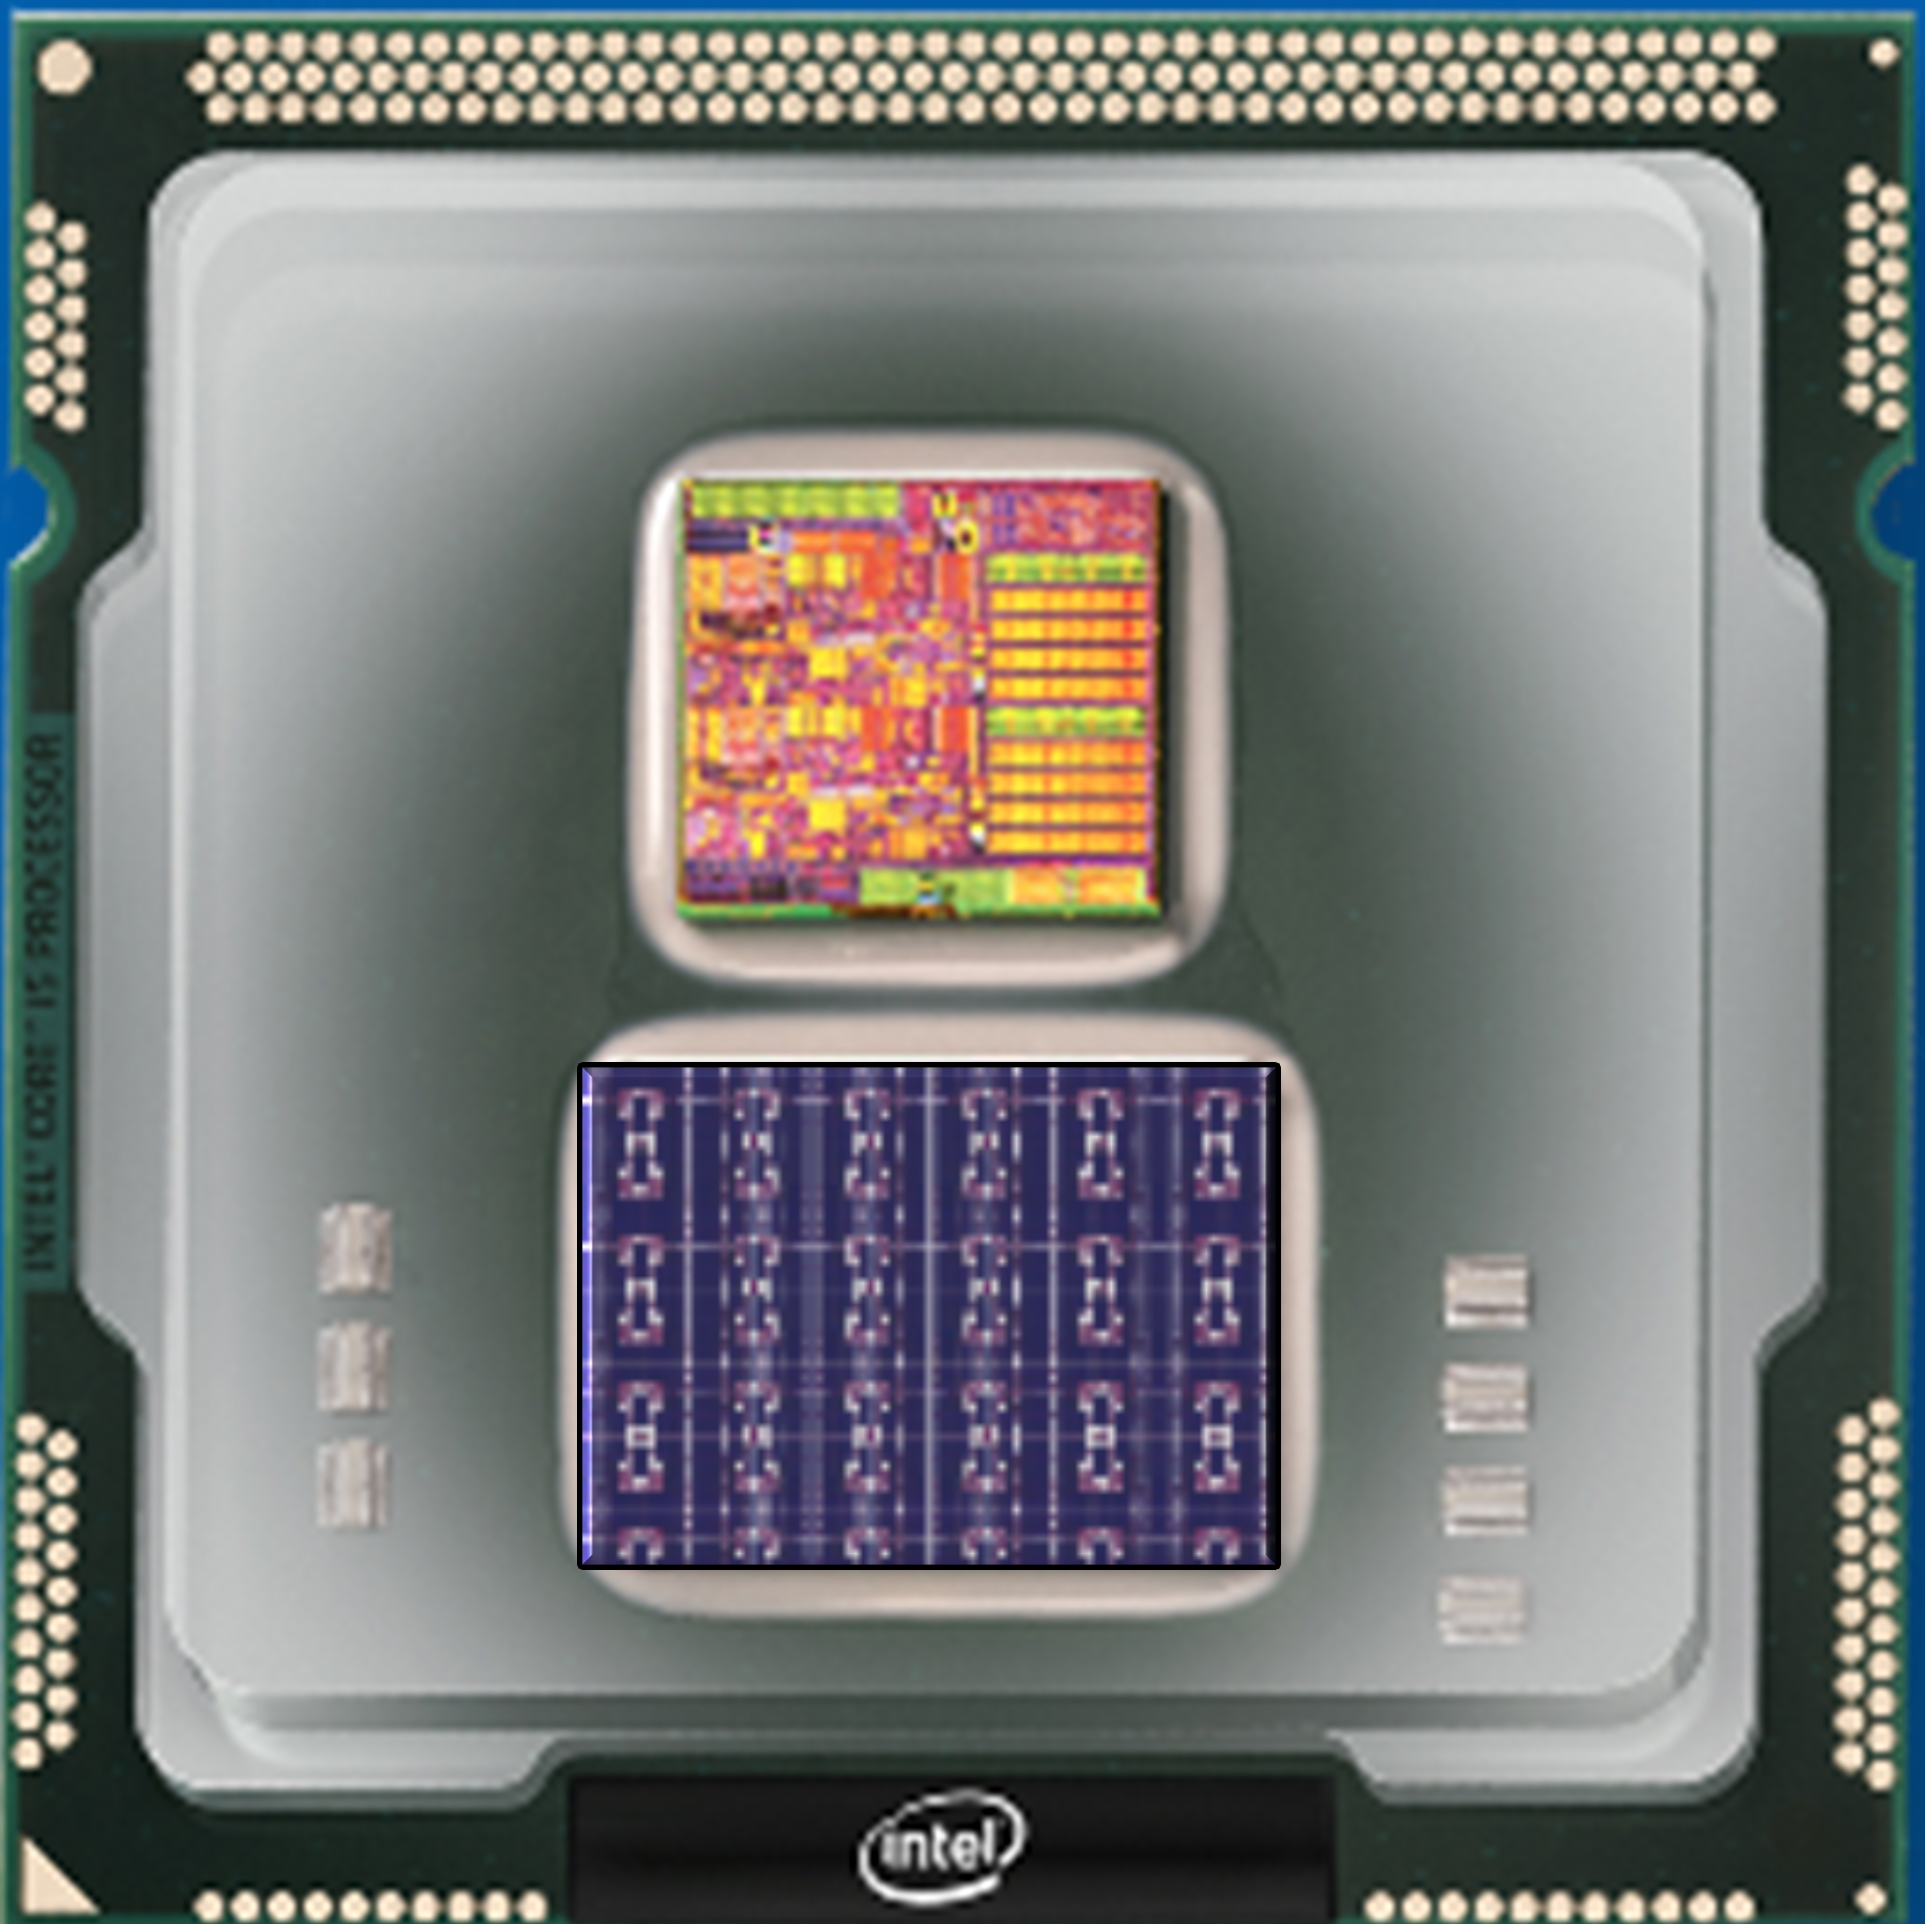 Intel intros self-learning chip codenamed Loihi